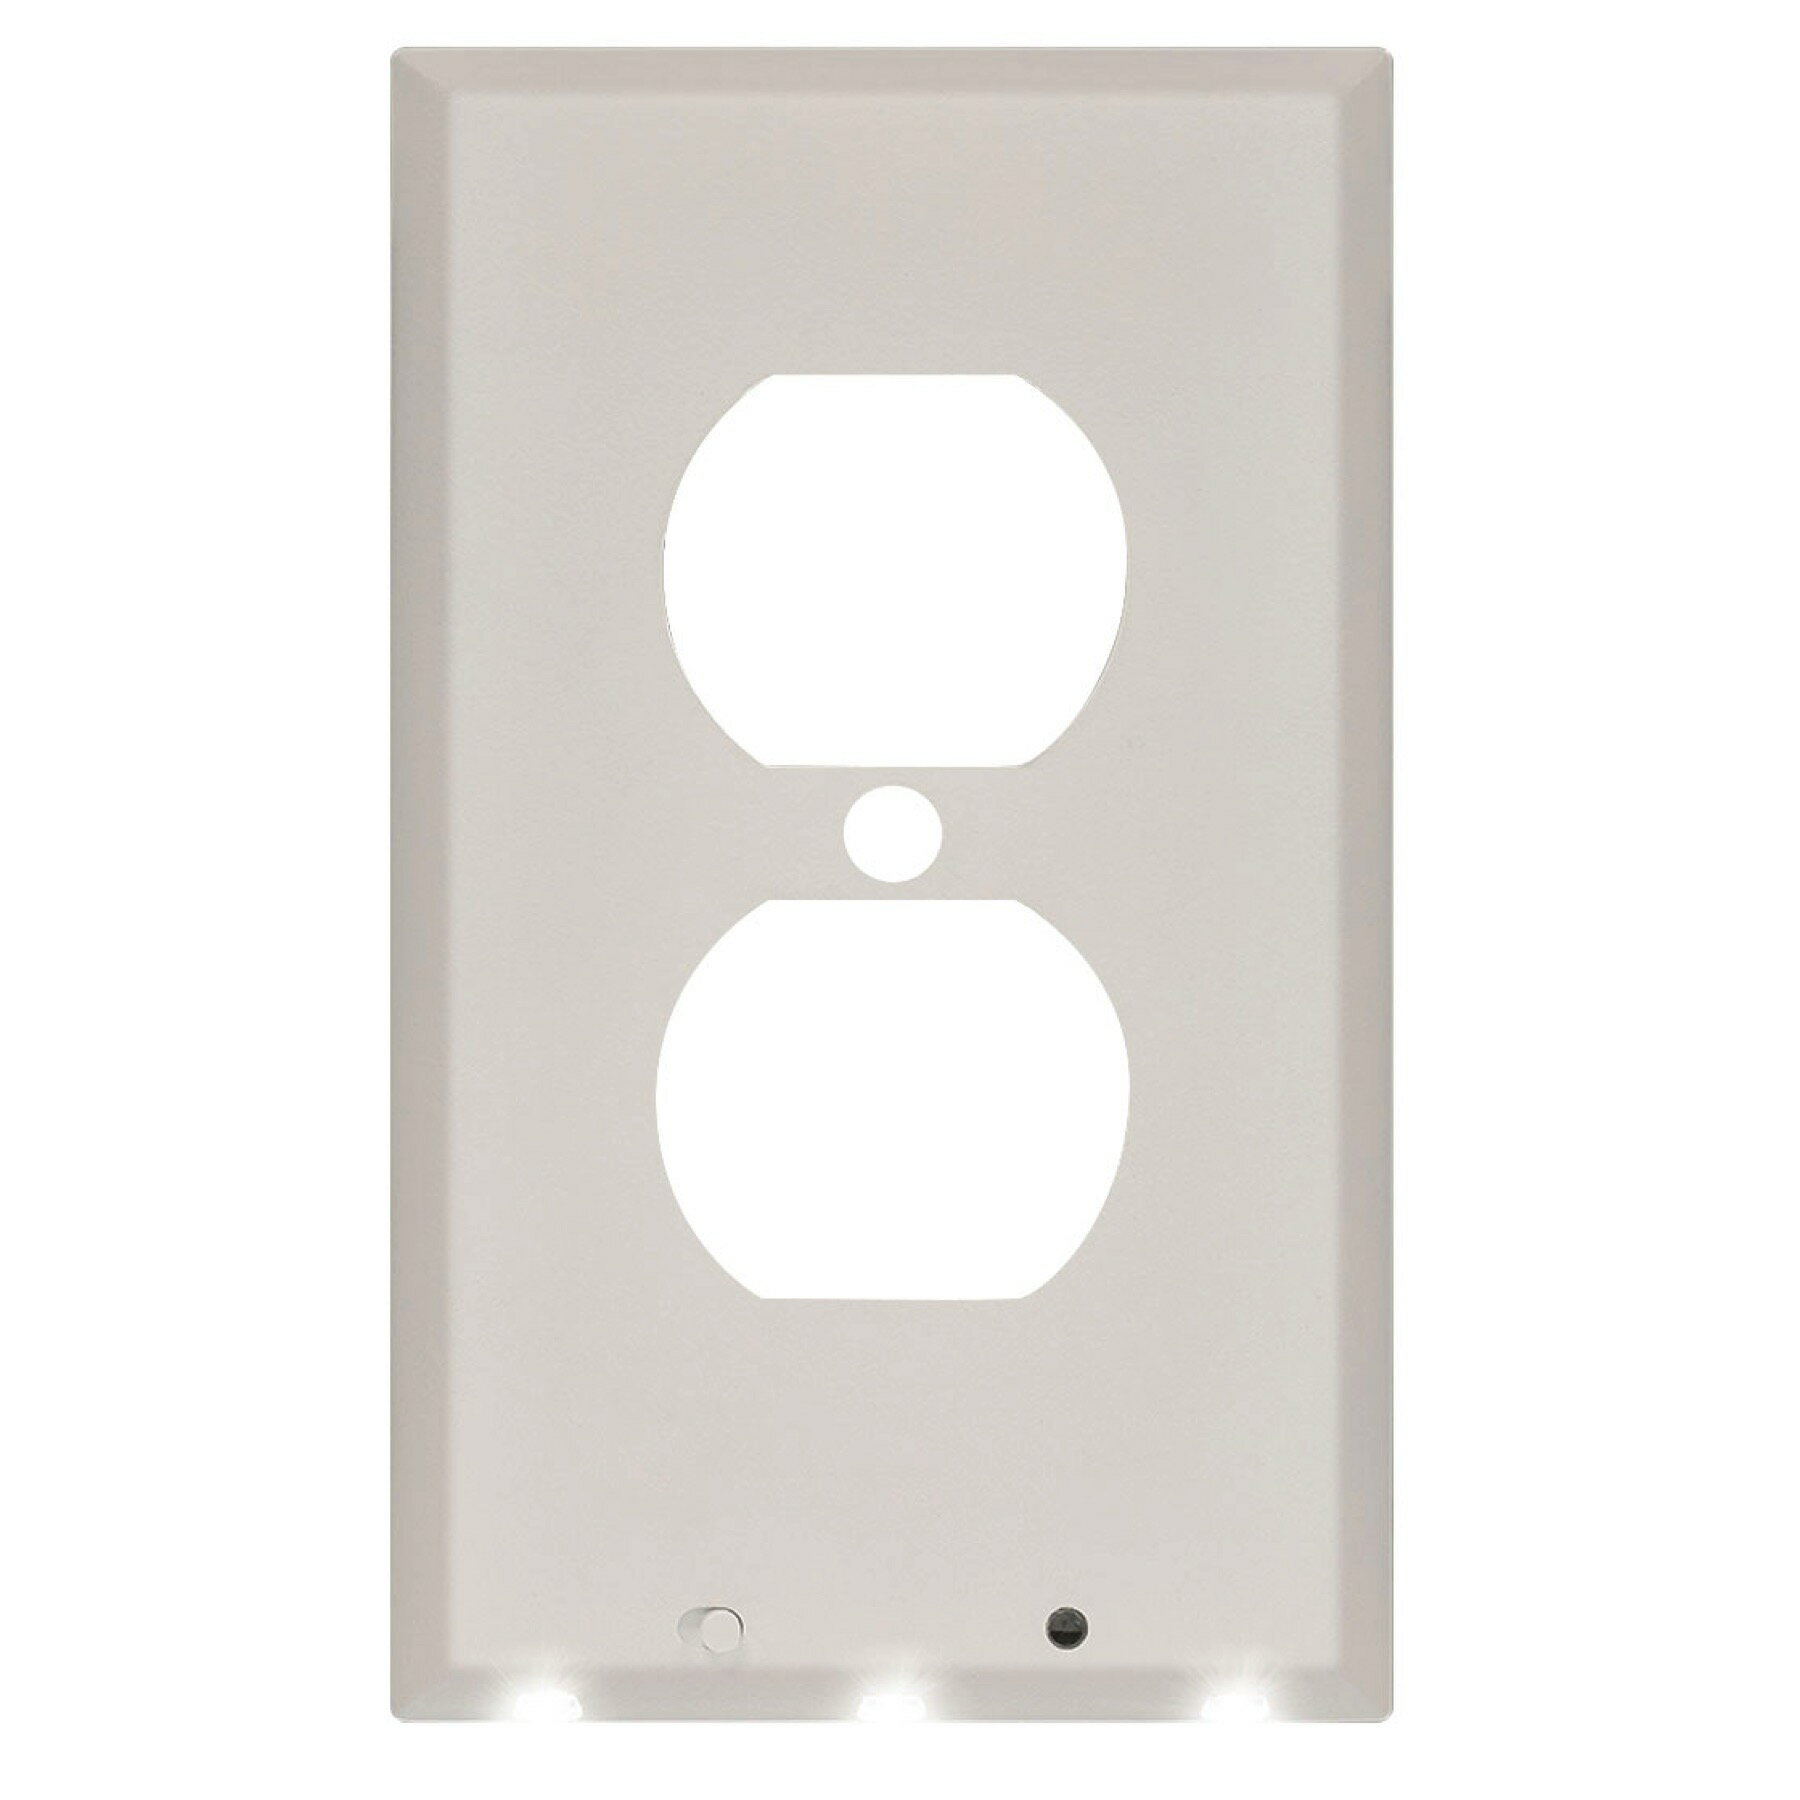 Toolsmithdirect powerglow wall outlet plate led night light onoff powerglow wall outlet plate led night light onoff switch white duplex 240025 0 aloadofball Images